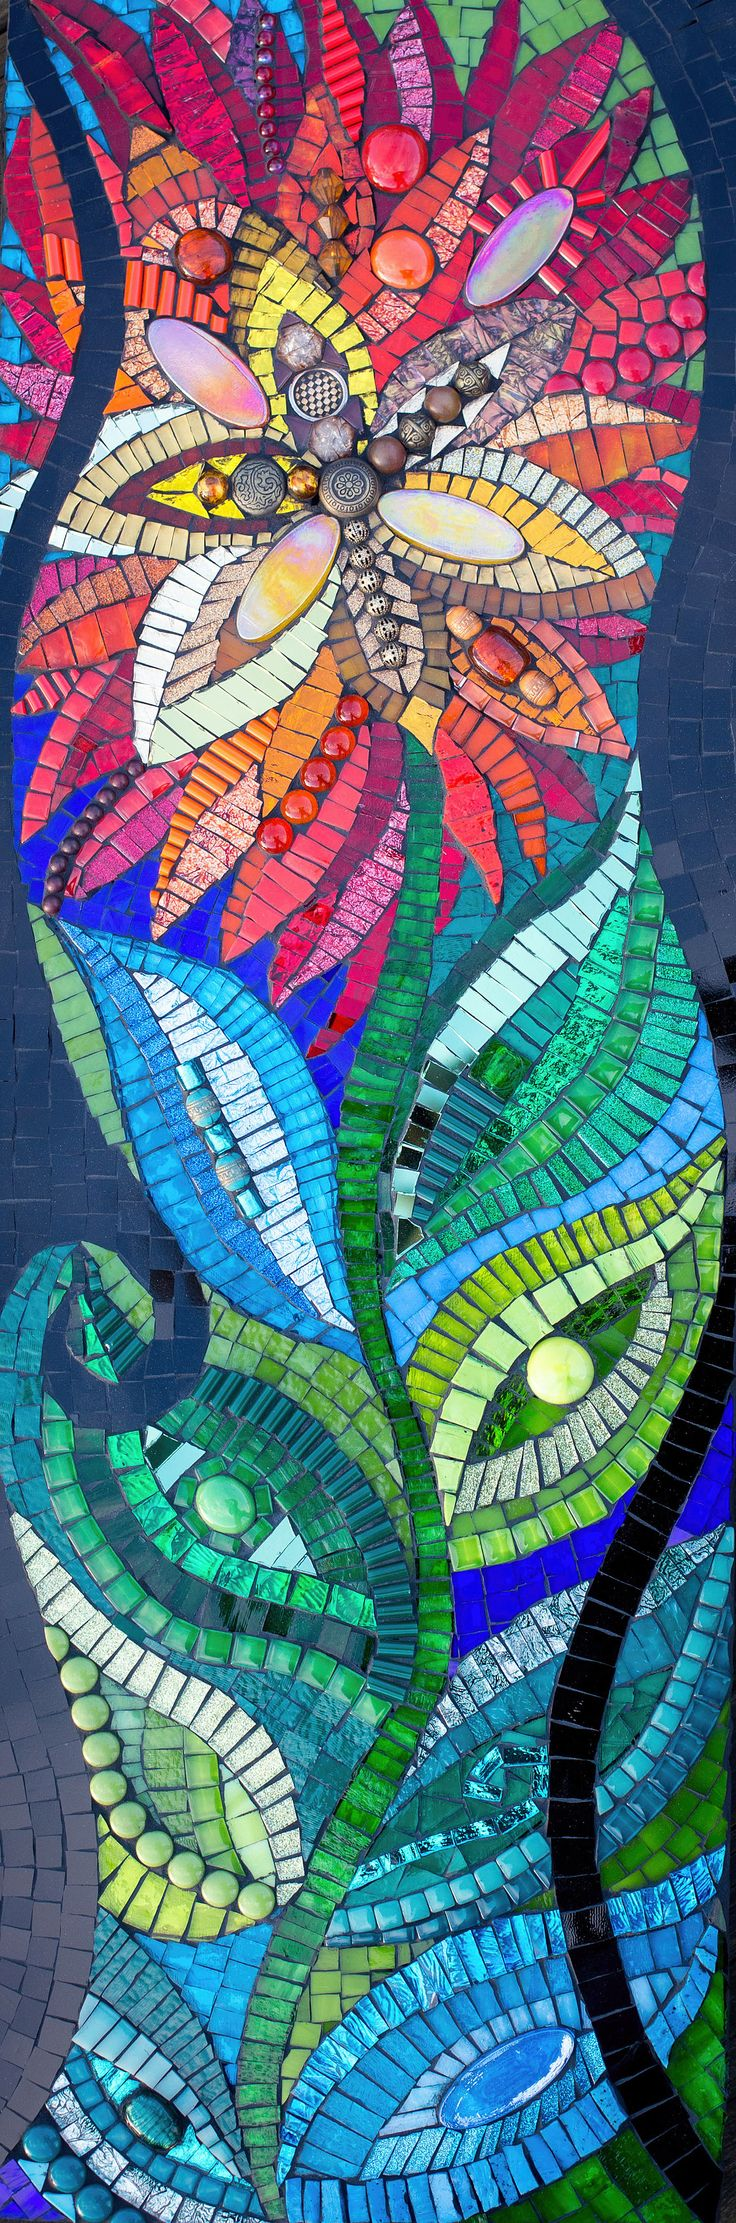 Colour has always been at the heart of every piece of artwork I have ever  created from simple drawings to my most elaborate mosaic pieces.